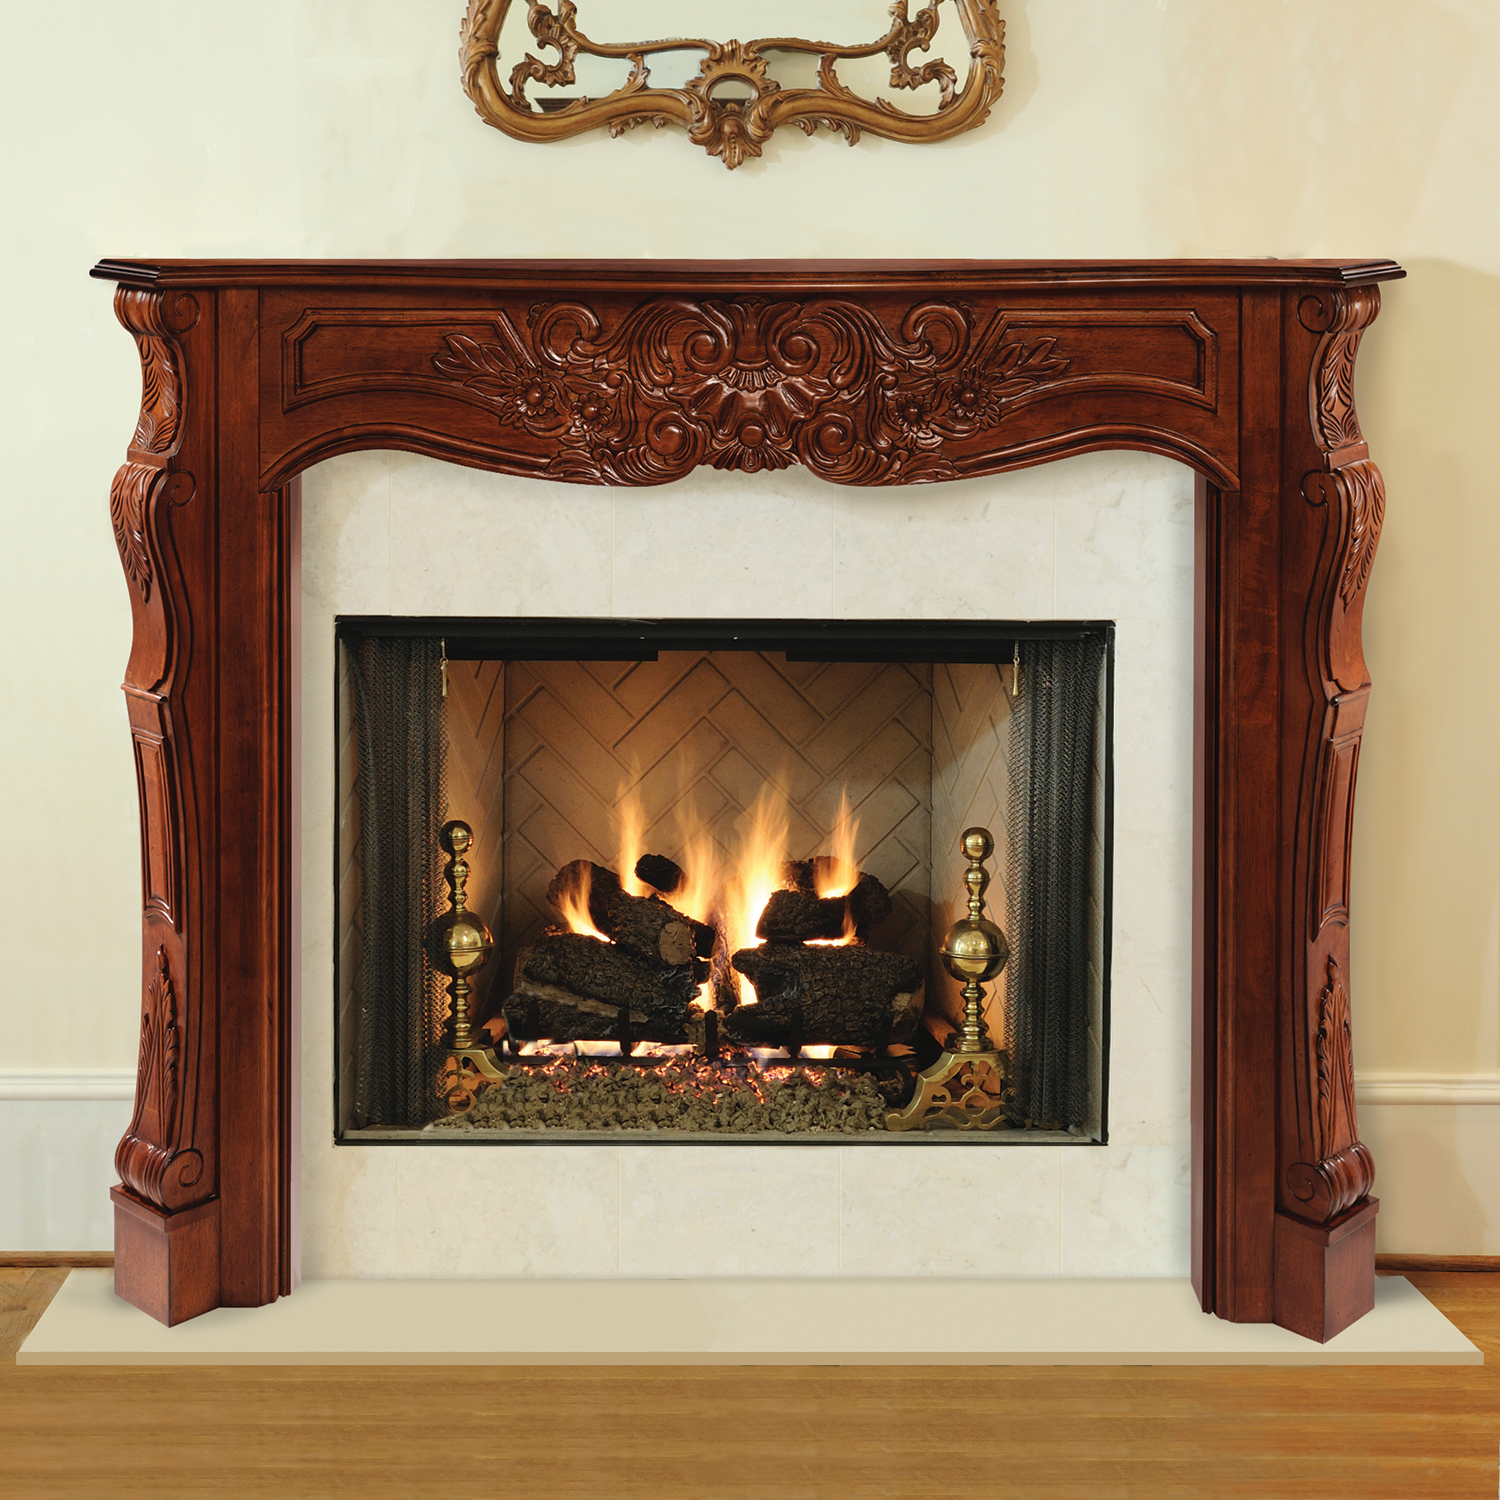 Pearl Mantels Avondale Fireplace Surround: Amazon.com: Pearl Mantels 530-48 Monticello Fireplace